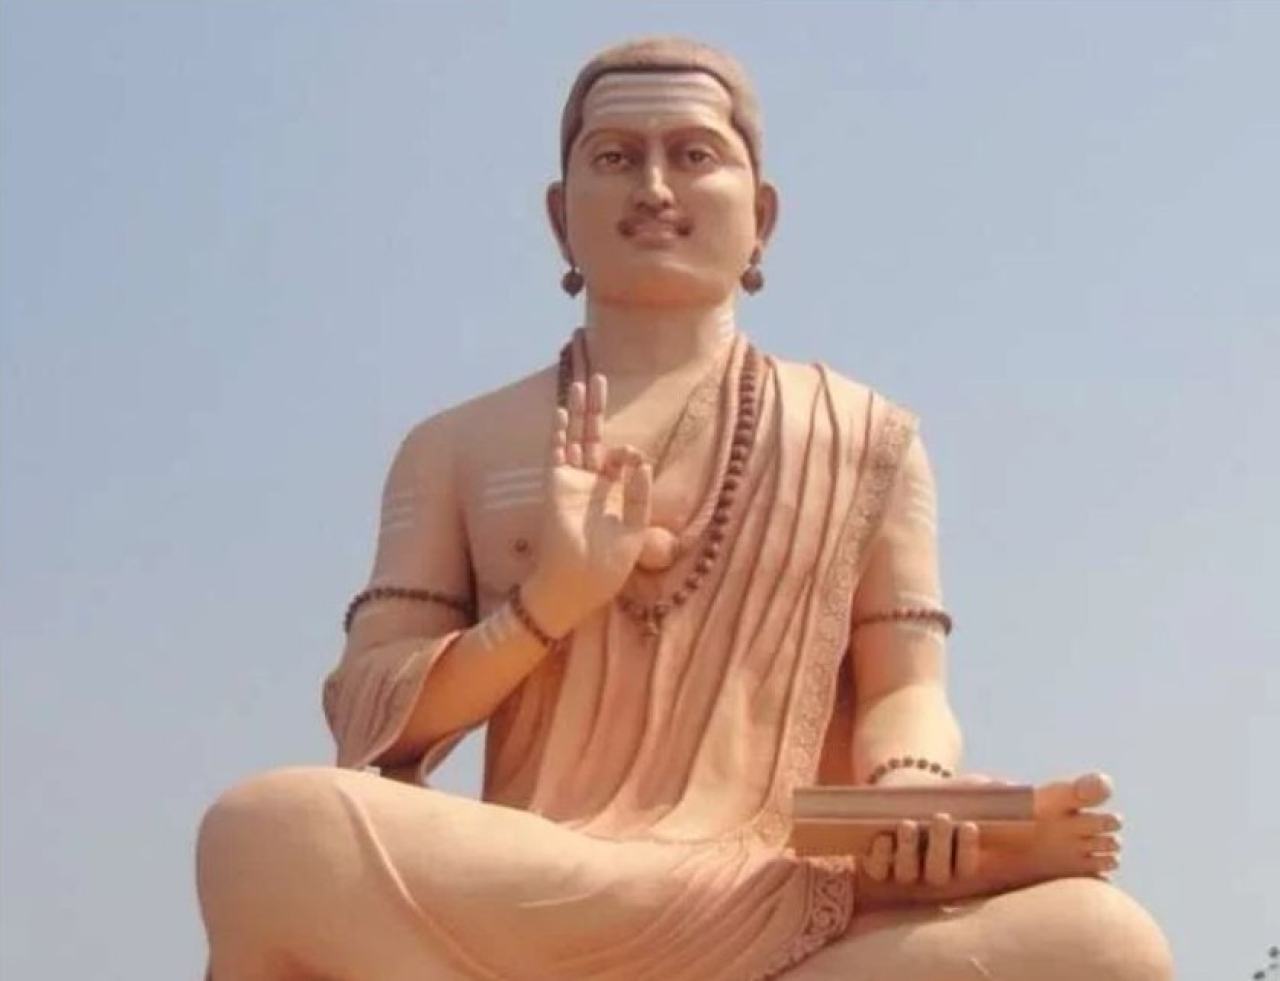 Basavanna, who is credited with founding Lingyatism. (Sscheral via Wikimedia Commons)